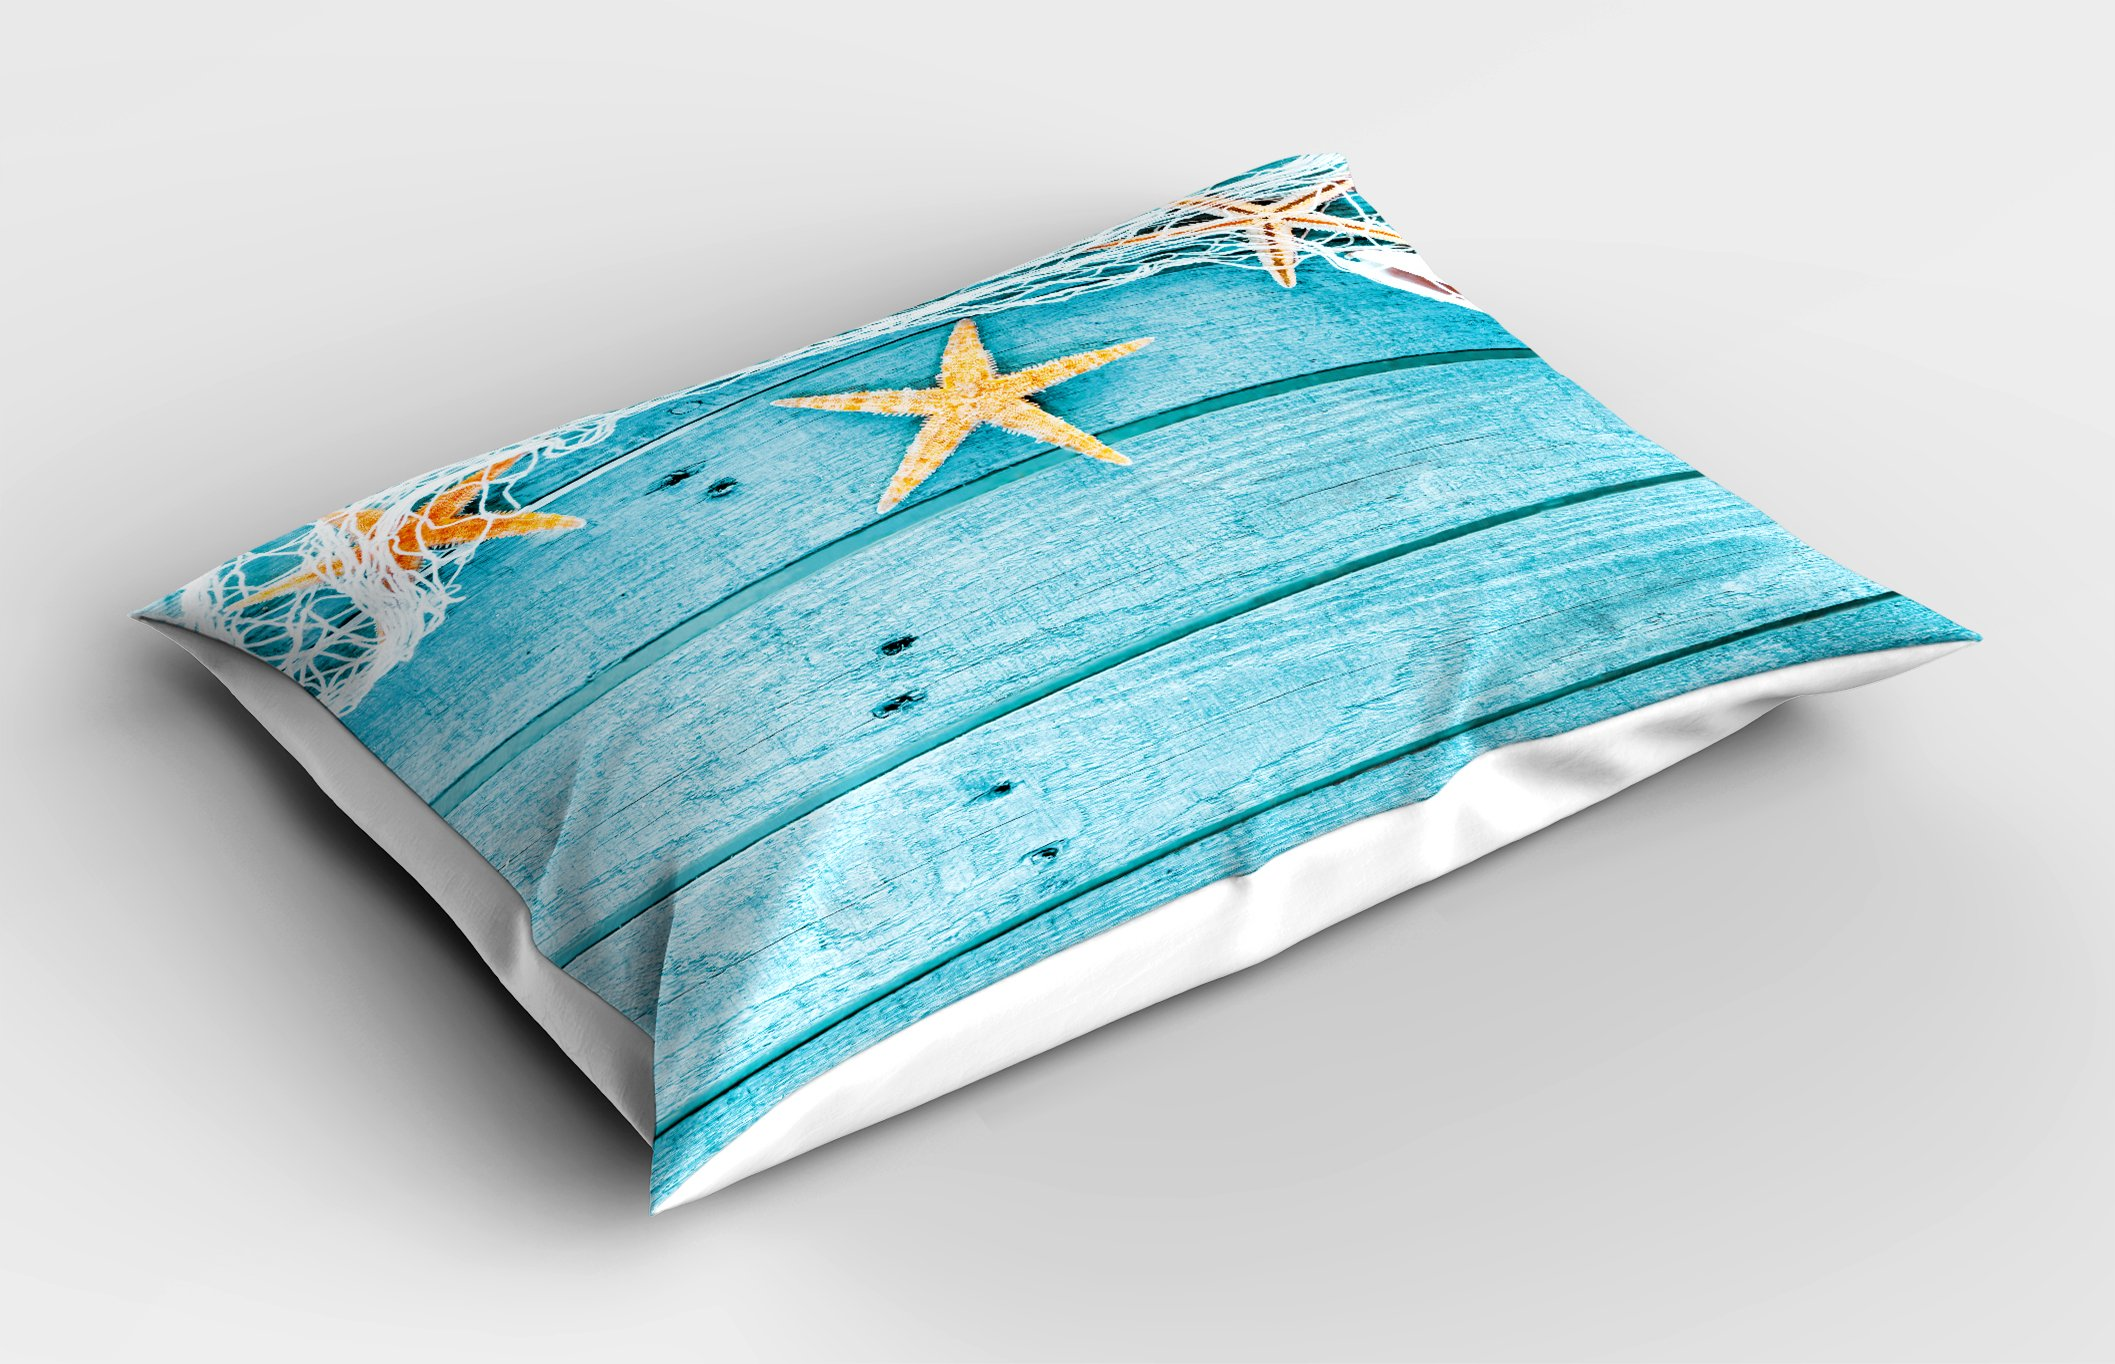 Ambesonne Starfish Decor Pillow Sham, Rustic Wood Boards Fishing Net and Ocean Animals Nautical Print, Decorative Standard Queen Size Printed Pillowcase, 30 X 20 inches, Turquoise White Orange by Ambesonne (Image #2)